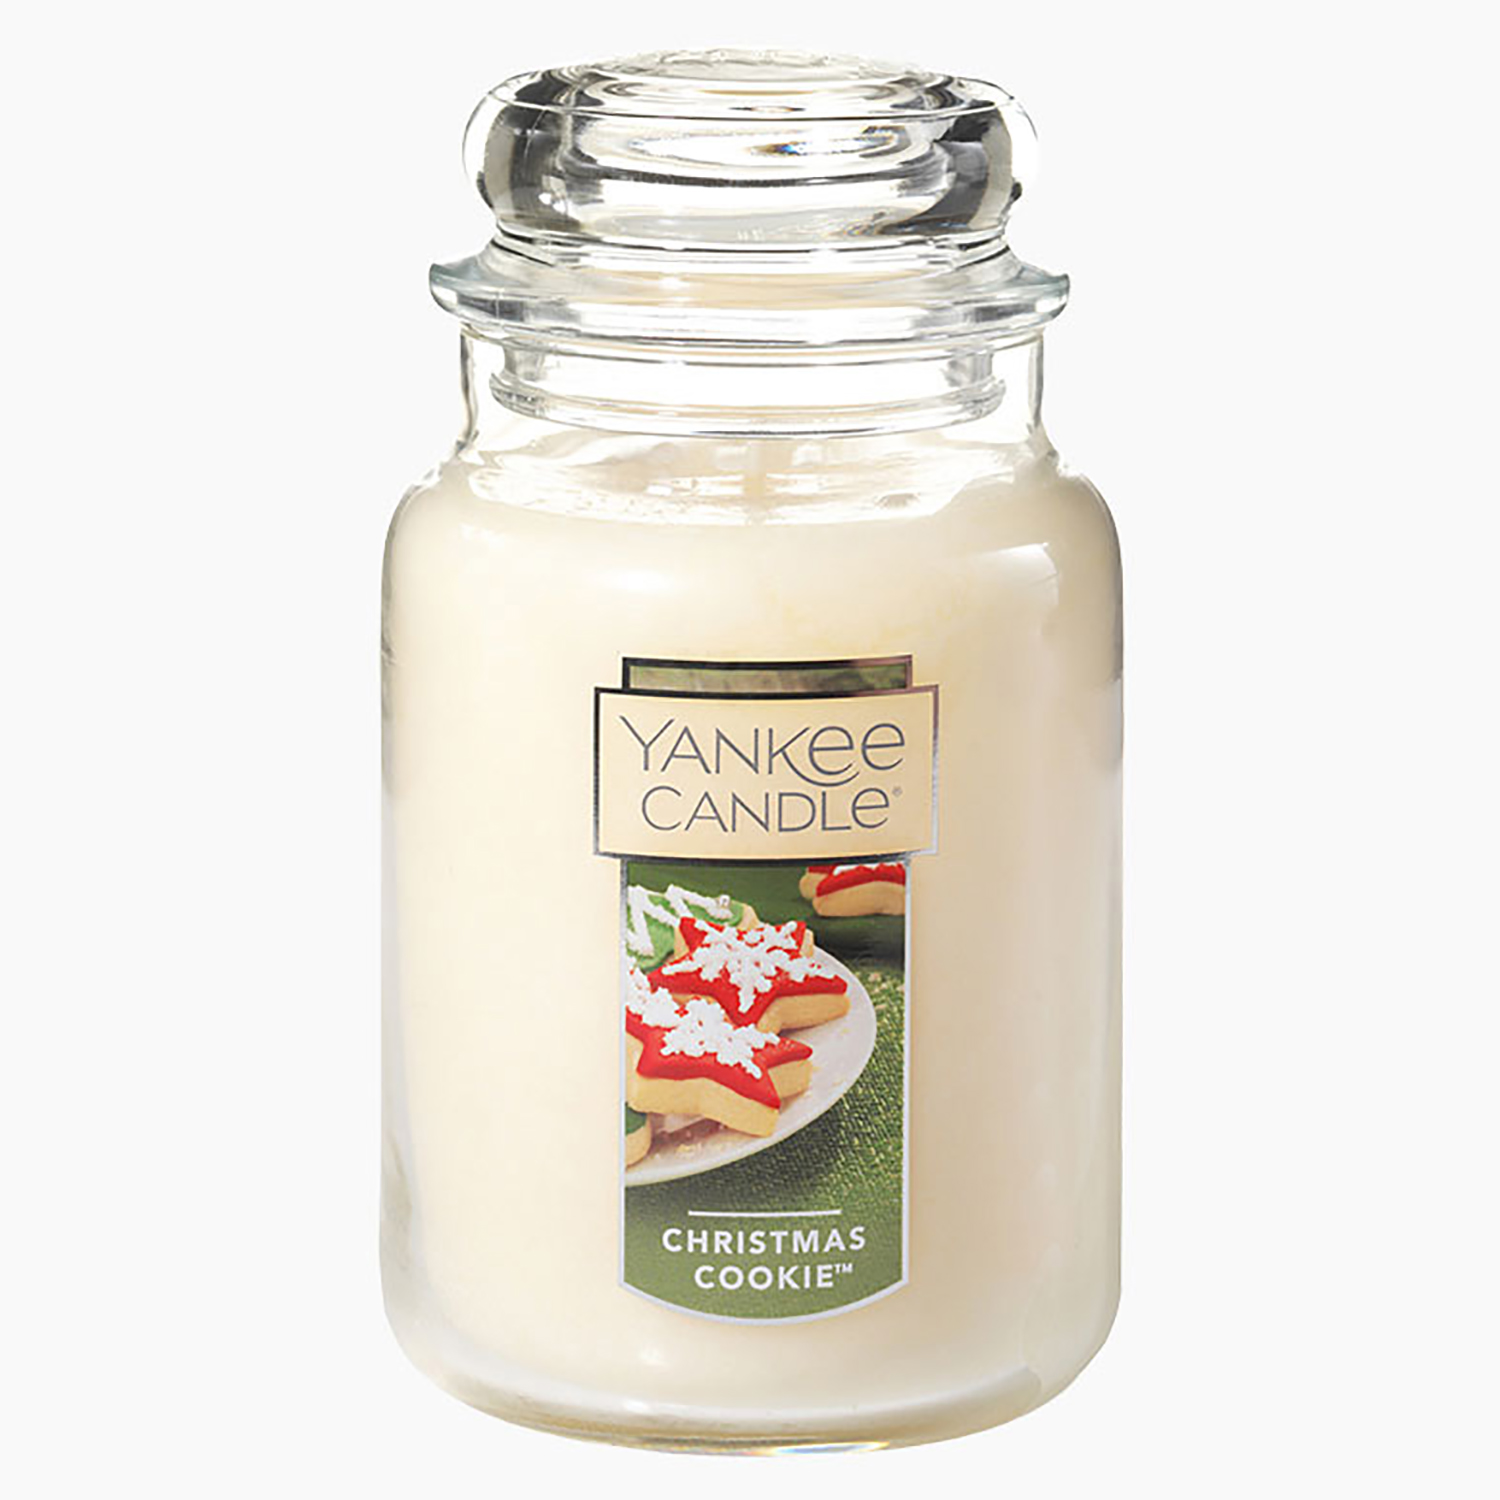 Yankee Candle Large Christmas Cookie Candle